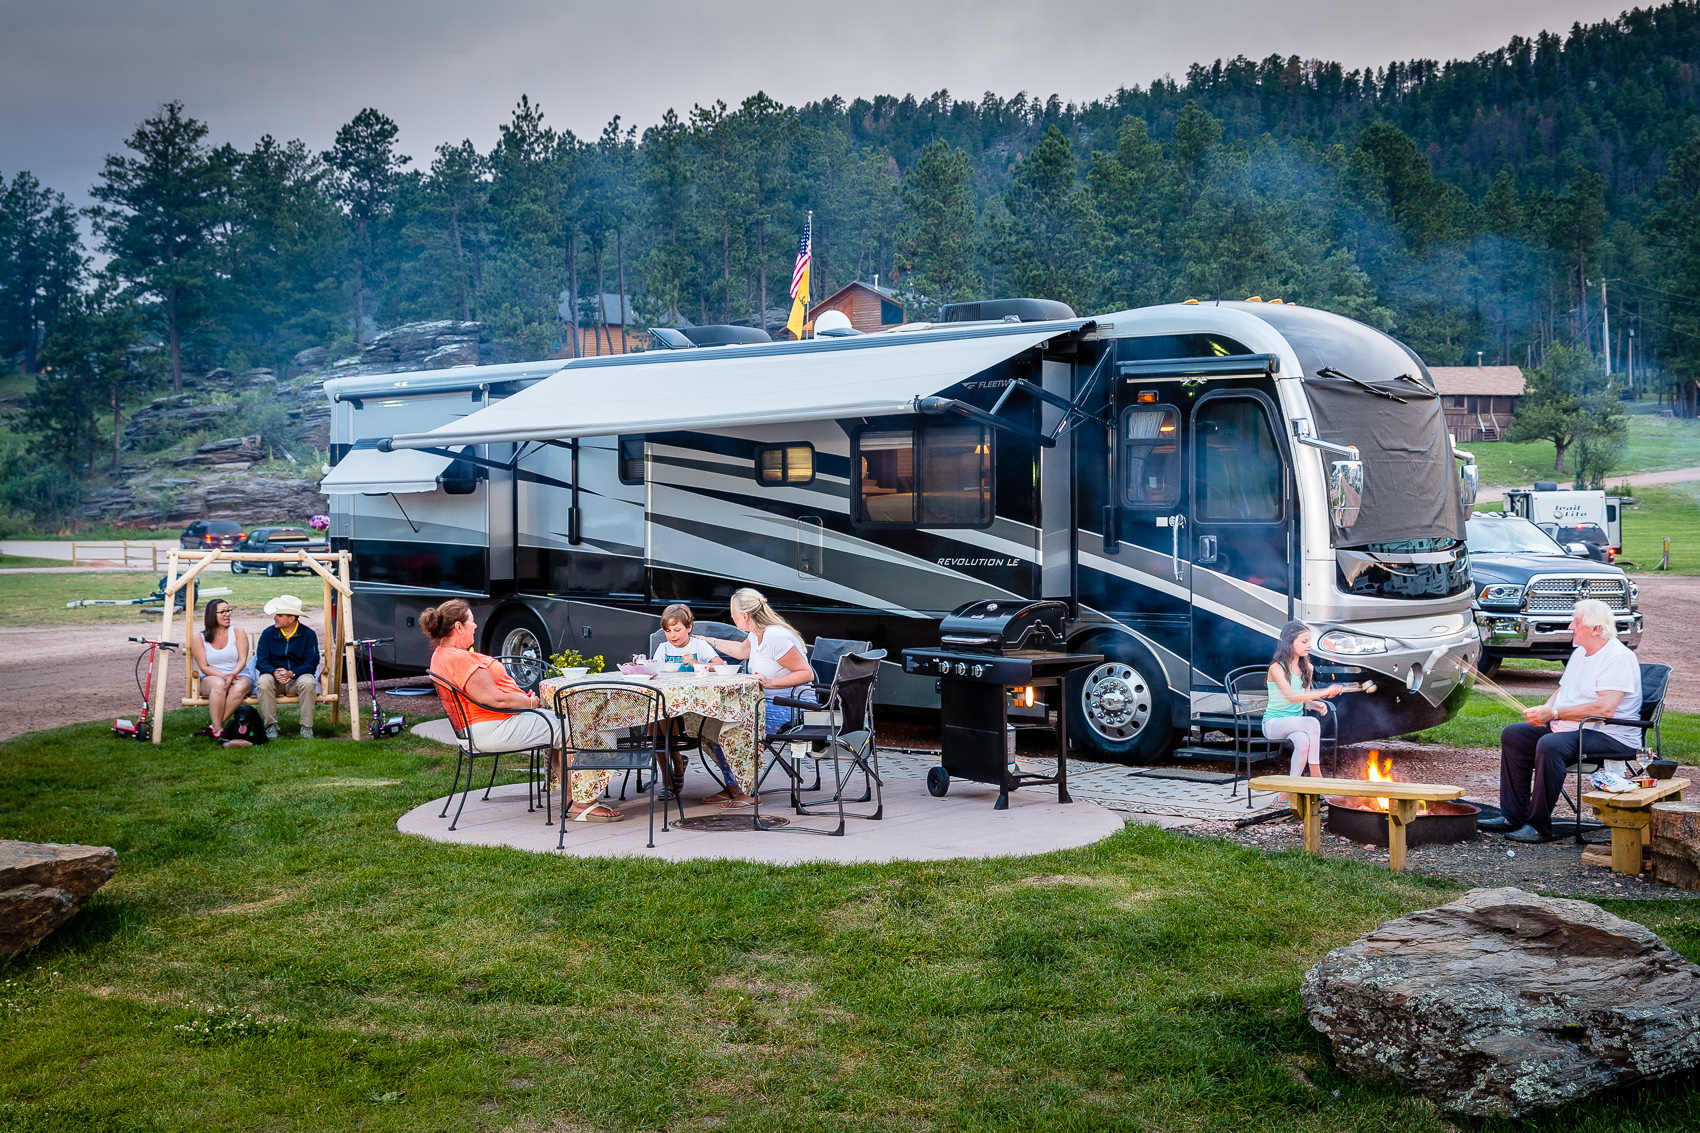 full hookup campgrounds near mt rushmore